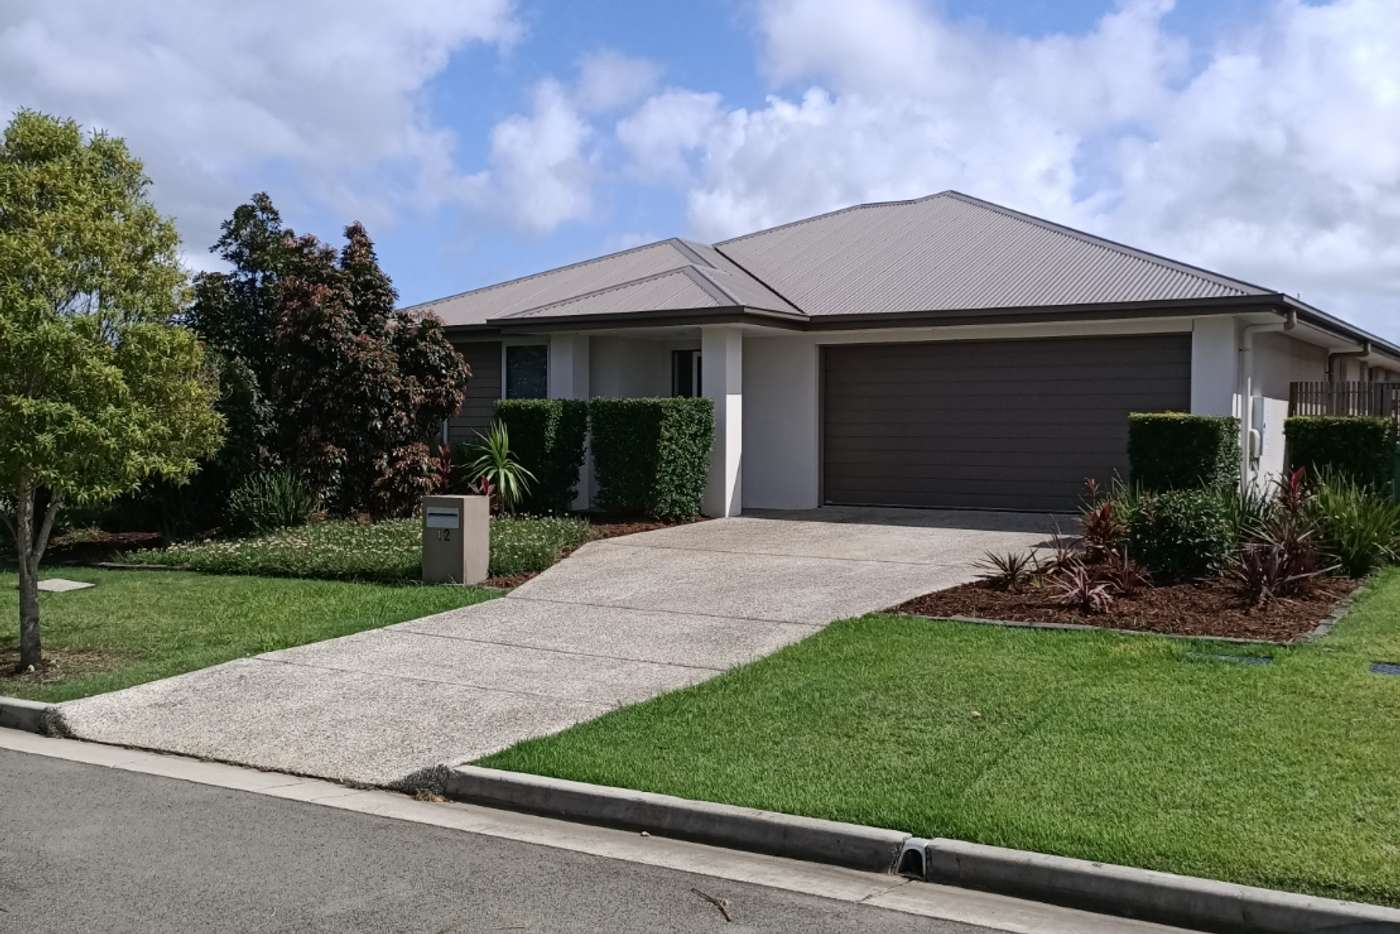 Main view of Homely house listing, 12 Greenmount Street, Pimpama QLD 4209